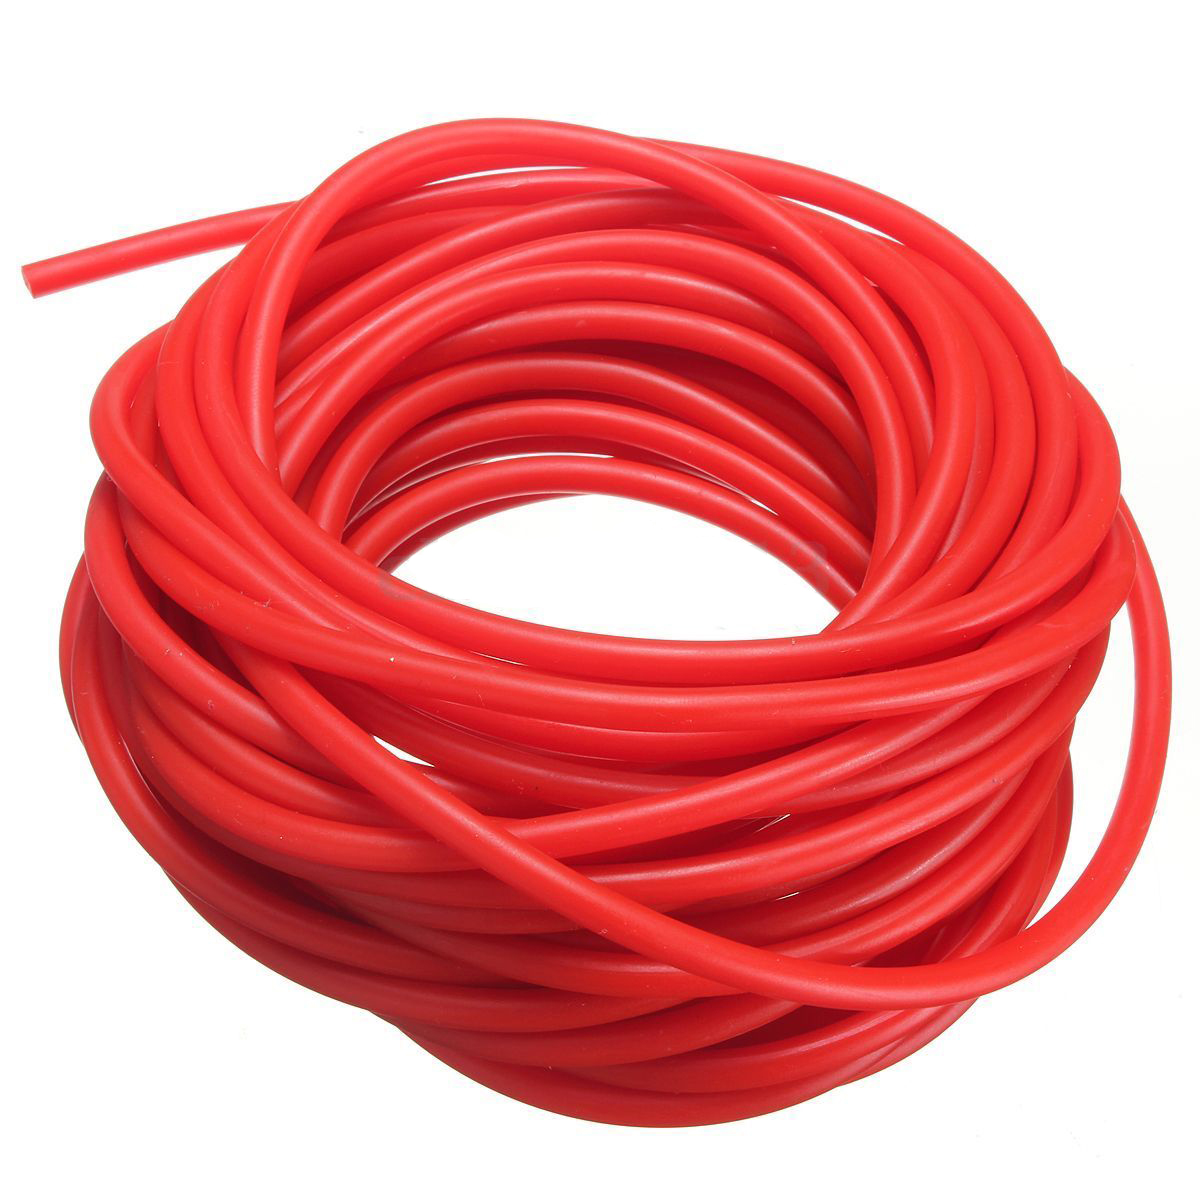 PROMOTION!Tubing Exercise Rubber Resistance Band Catapult Dub Slingshot Elastic, Red 2.5M